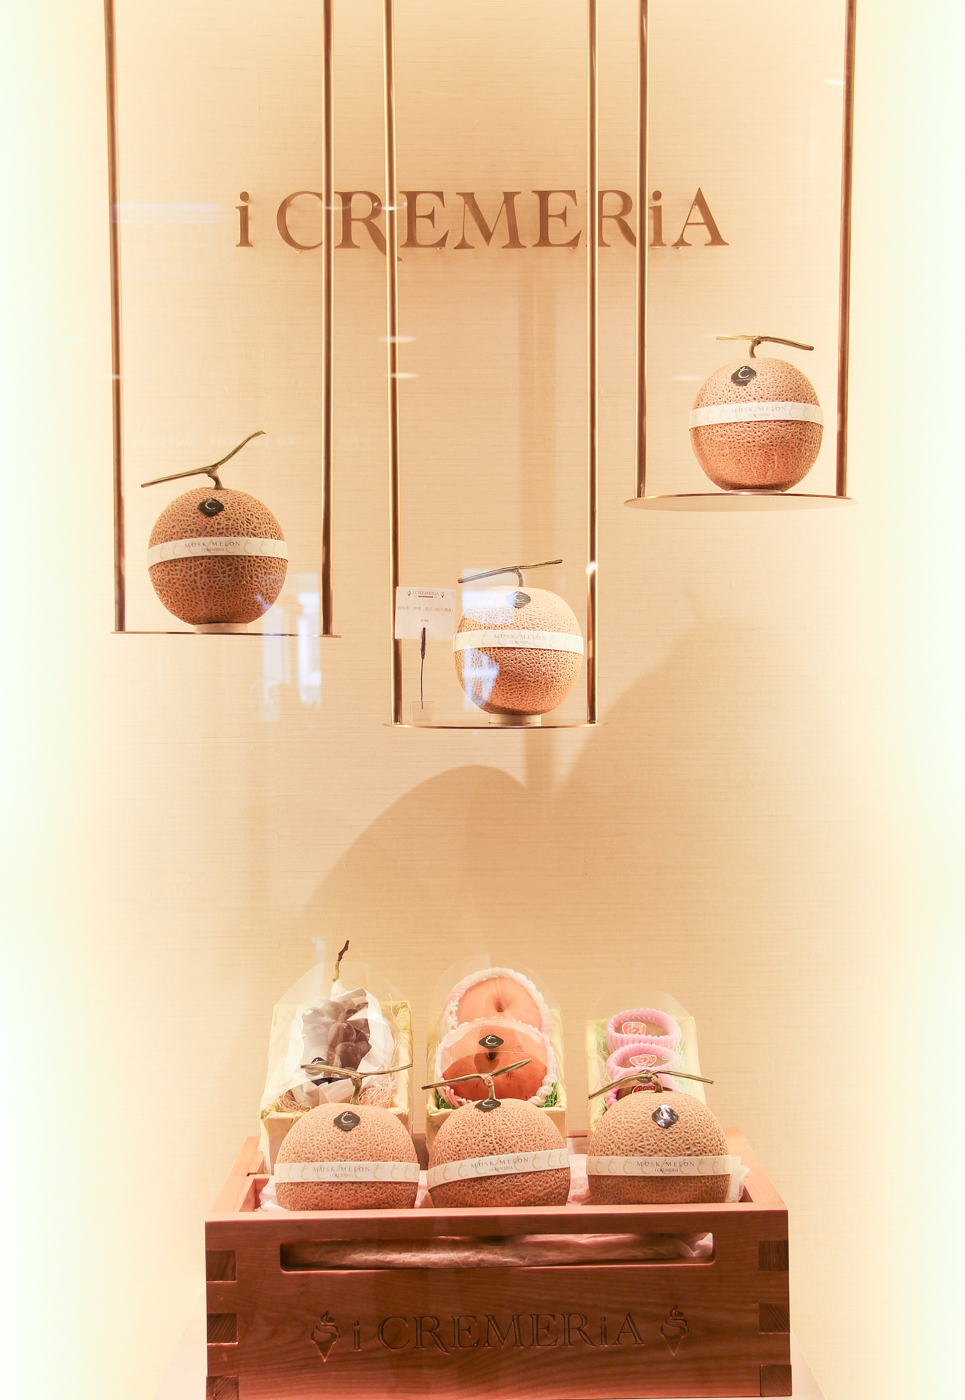 i Cremeria's beautiful store display! Photo by DY